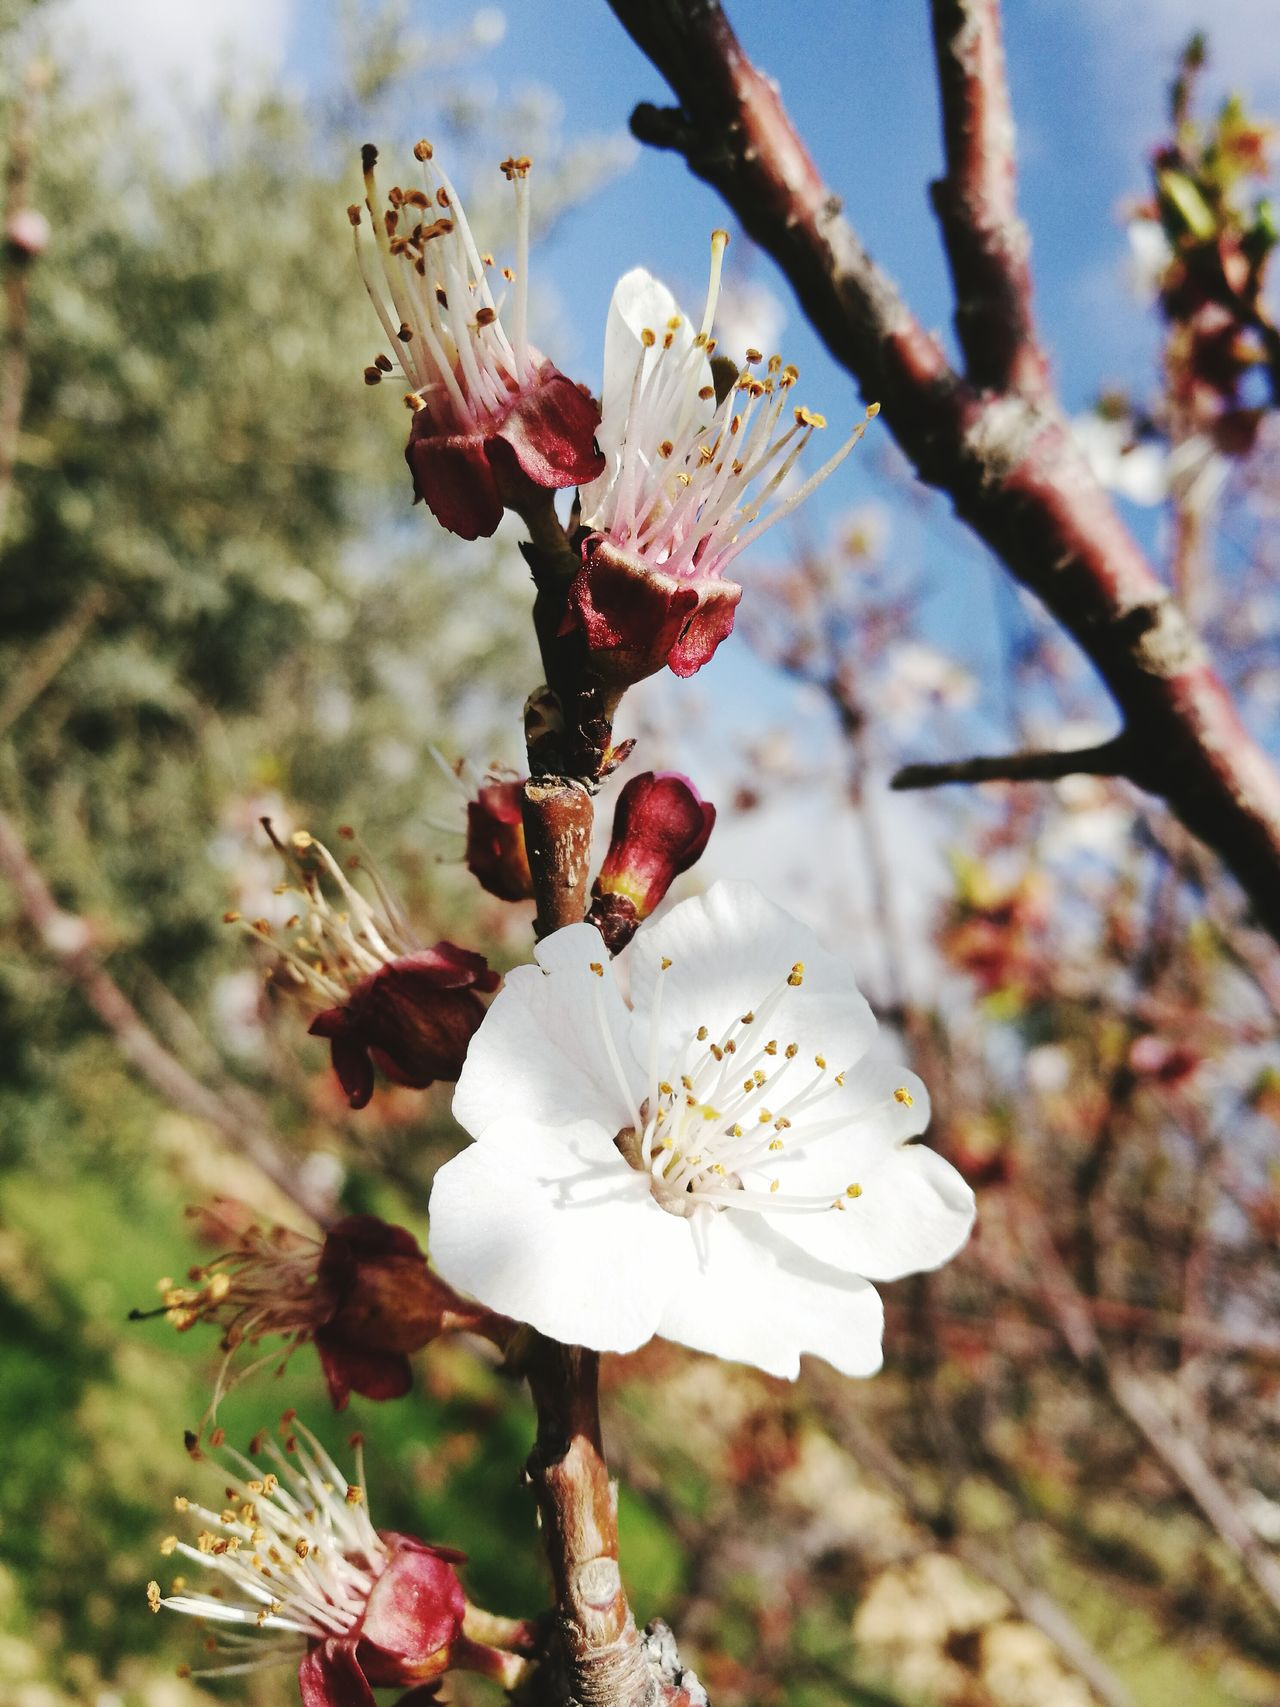 Nature Flower Growth Close-up Beauty In Nature Flower Head Apricot Tree Apricot Flowers Plant No Filter